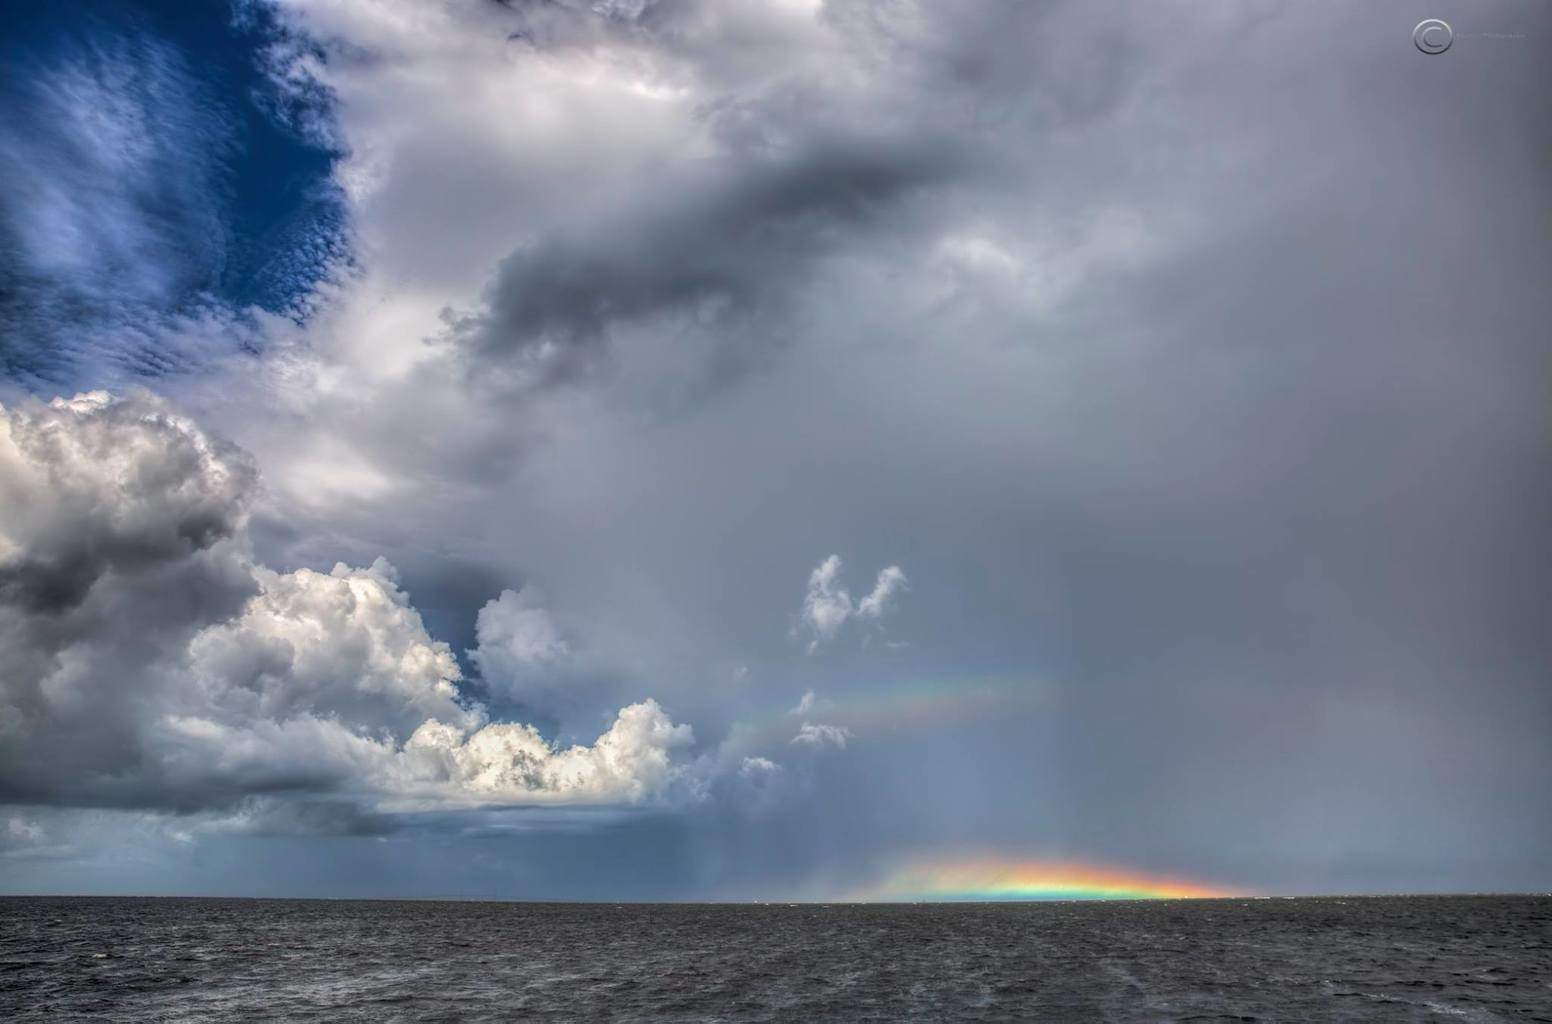 Double rainbow under a rapidly developing thunderstorm over Tampa bay, Fl this morning handheld shot from the bow of my rocking boat just before we headed back to the boat ramp, lol